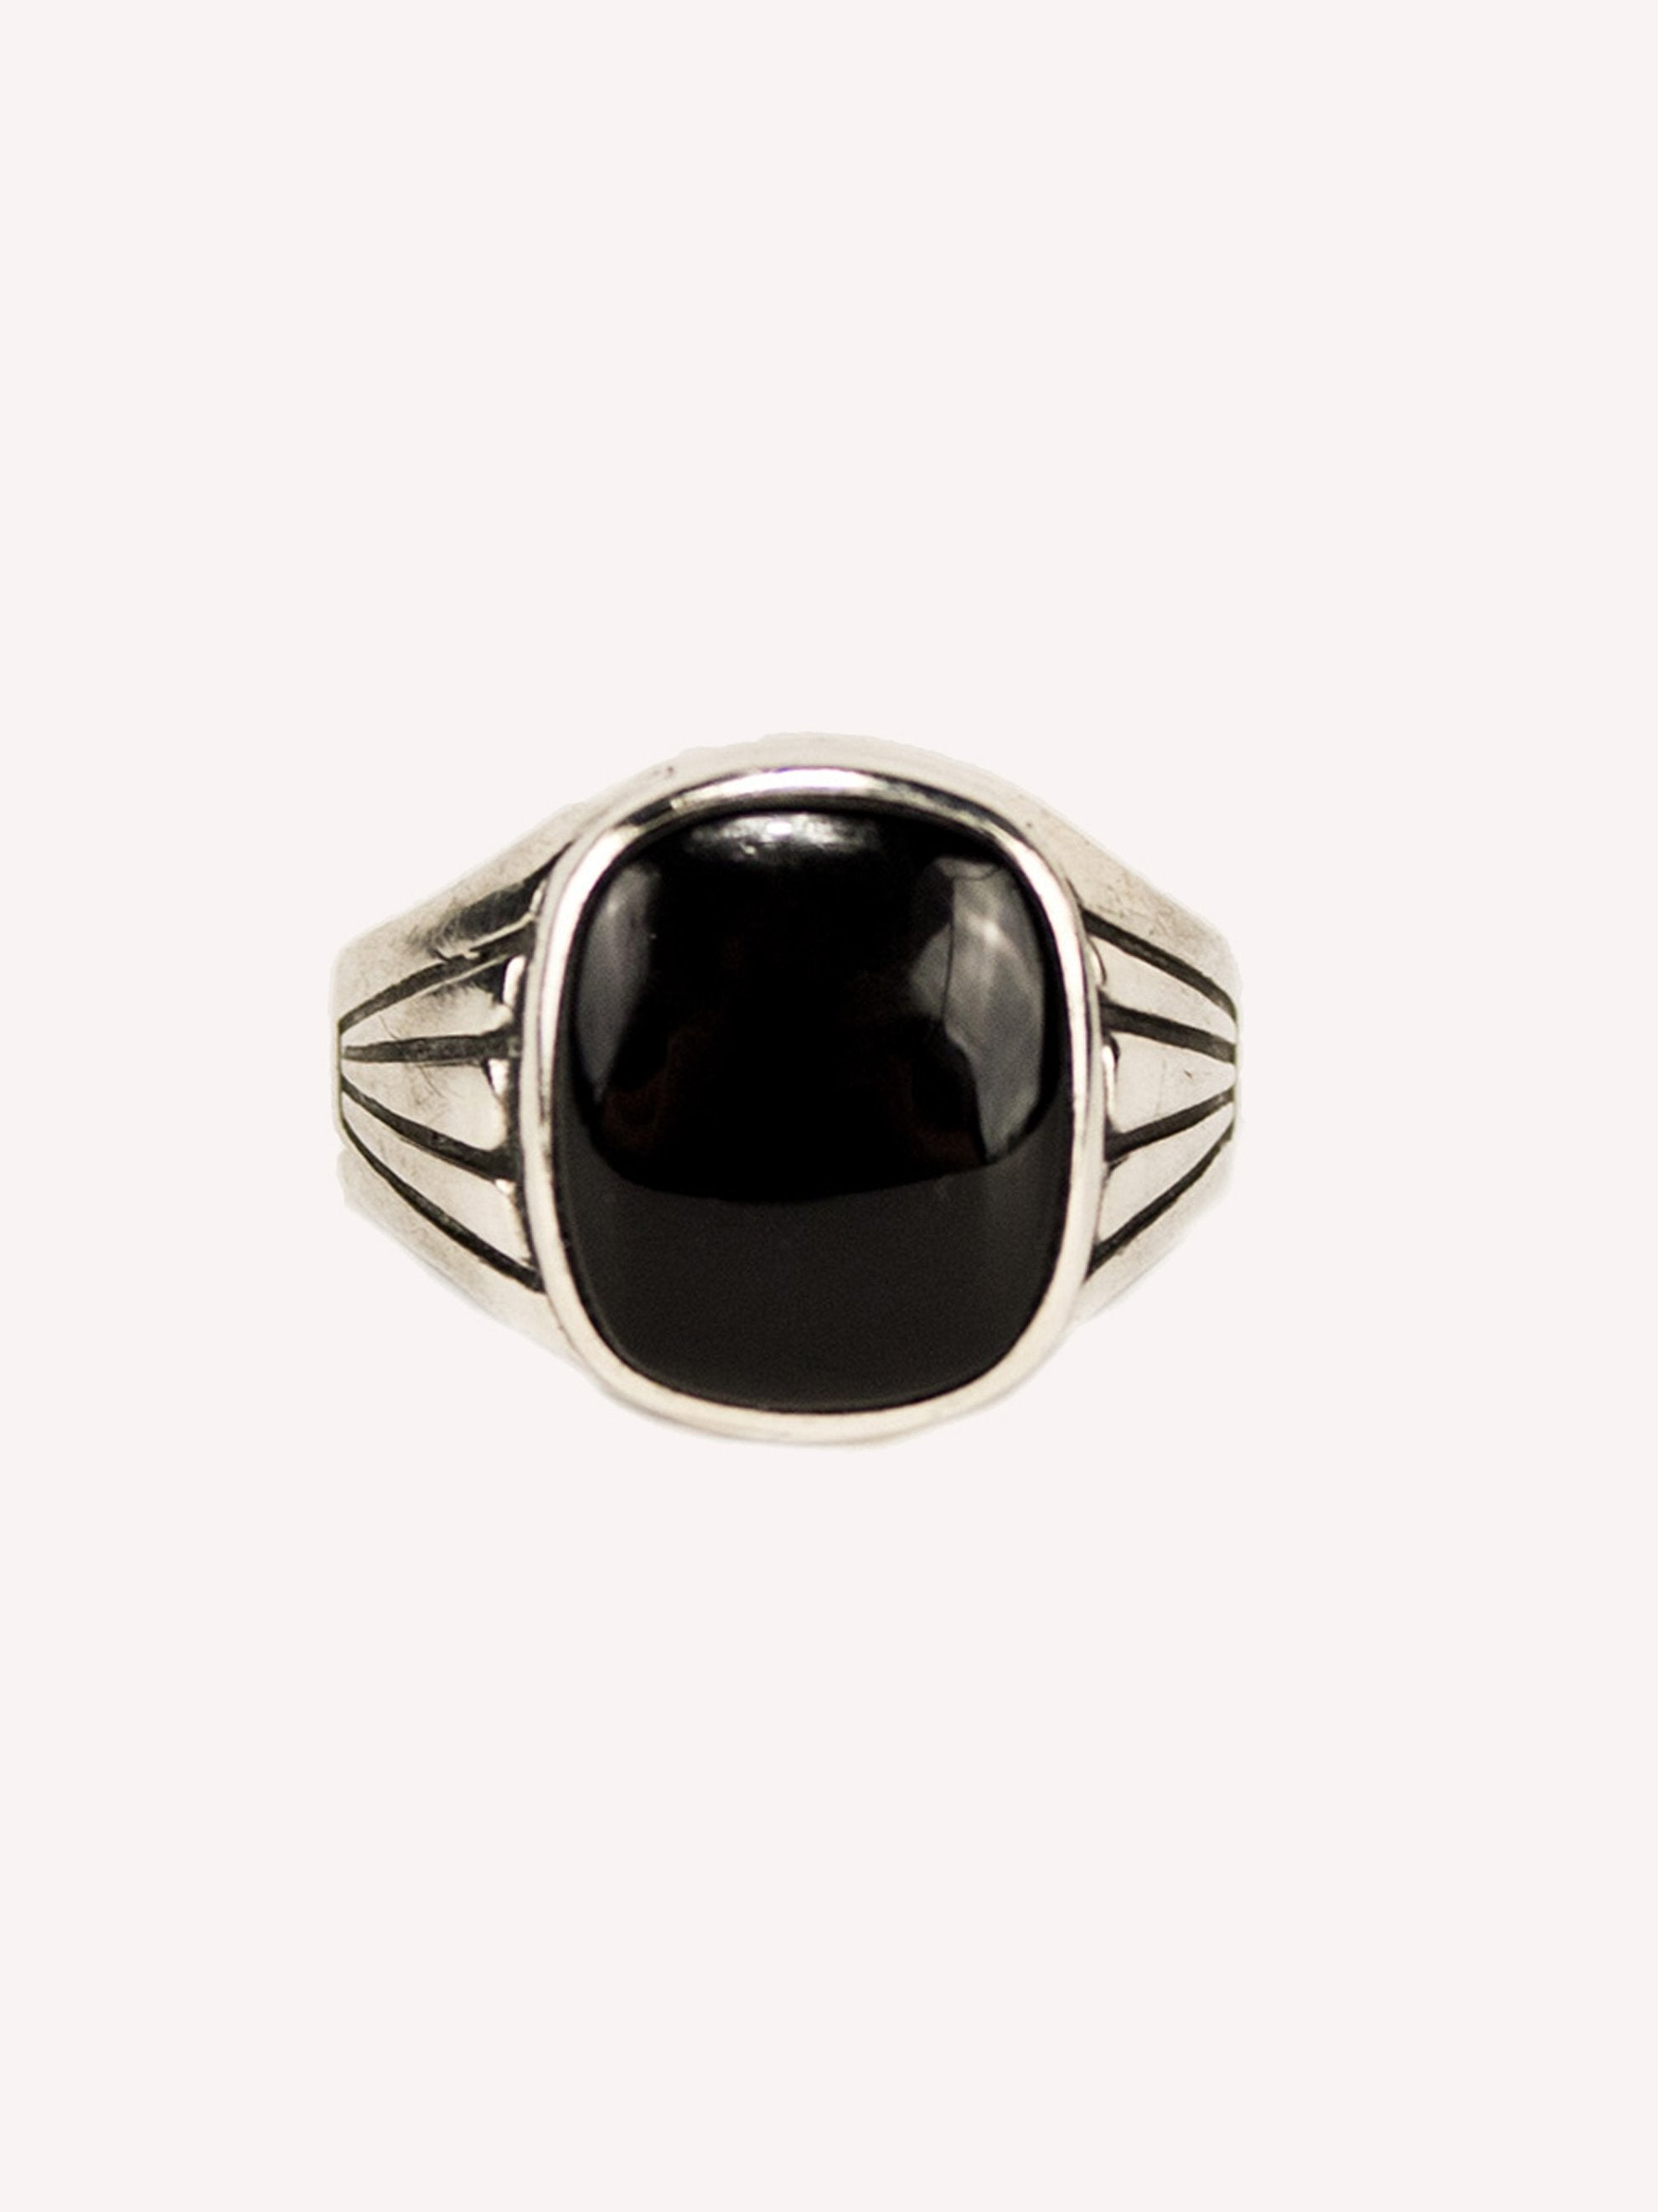 9.5 1930's Sterling Silver and Onyx Men's Ring 1